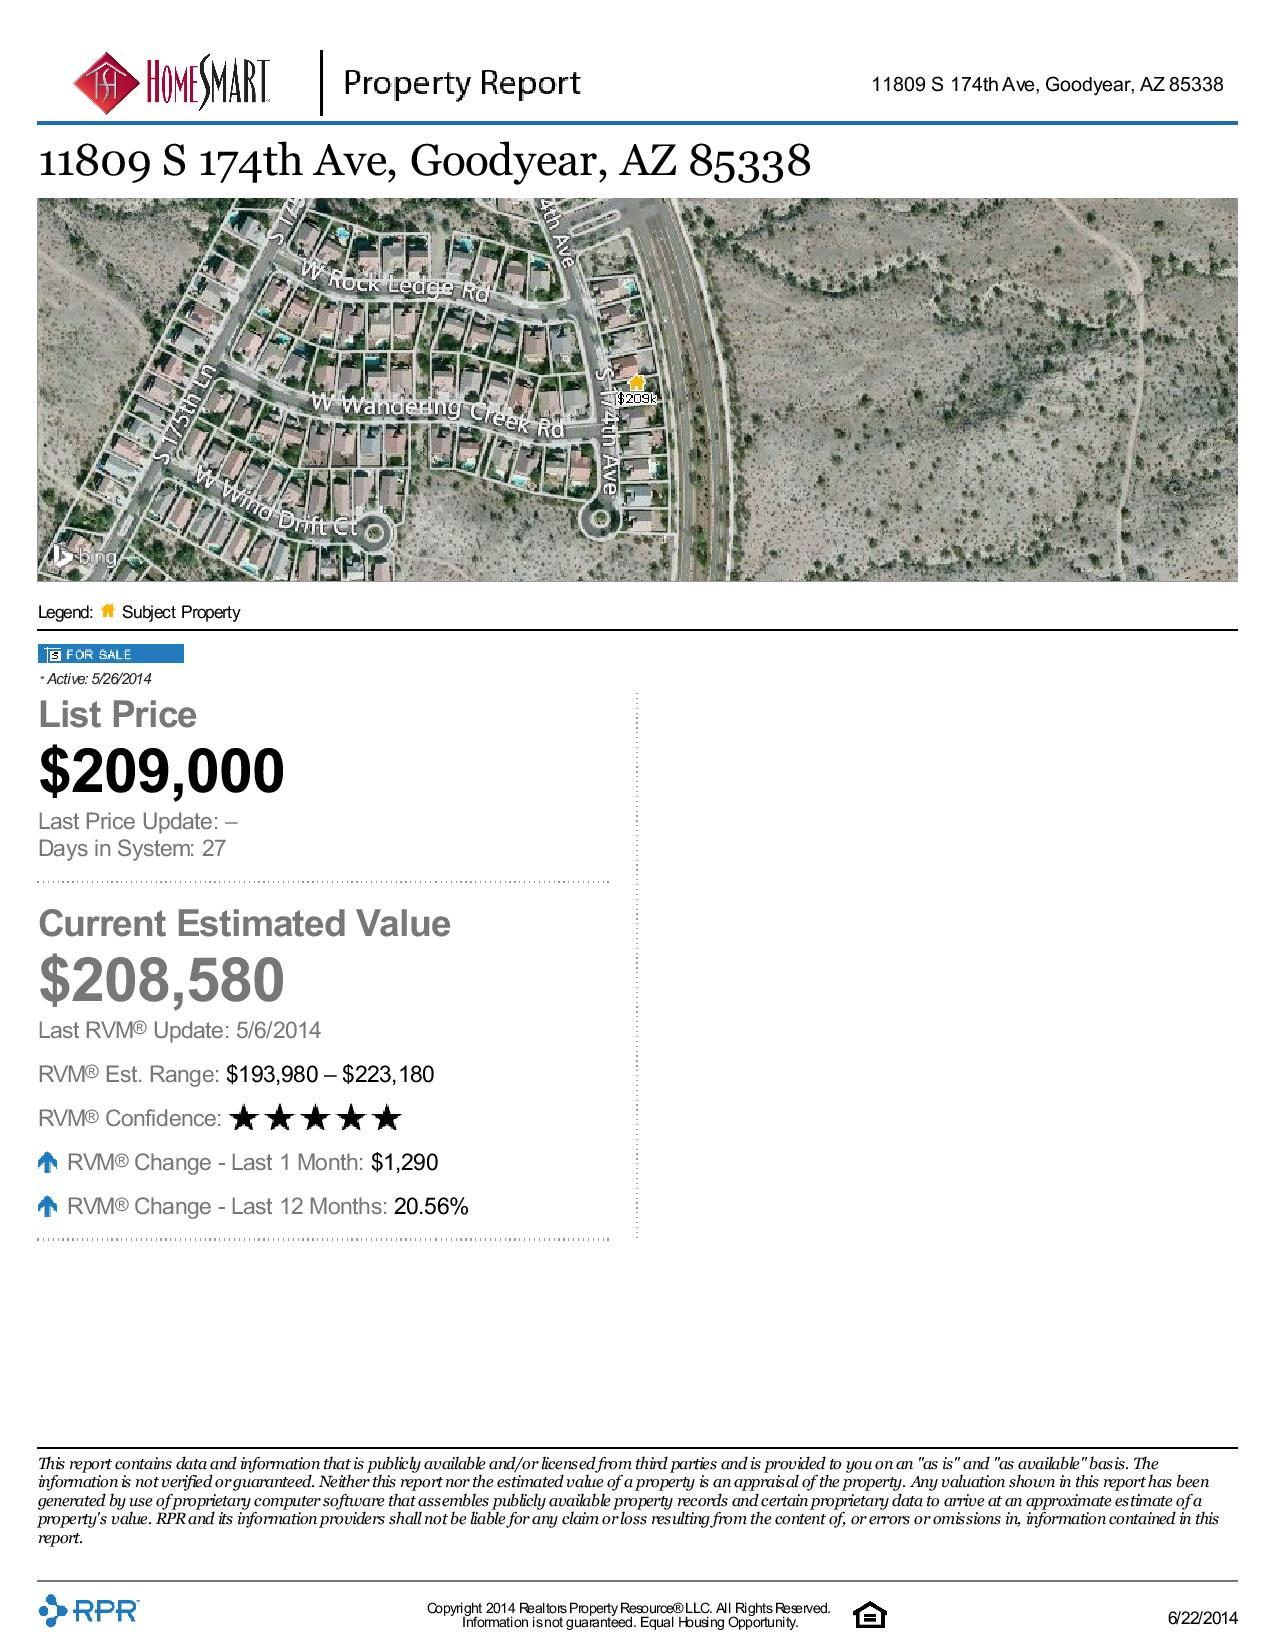 11809-S-174th-Ave-Goodyear-AZ-85338-page-002